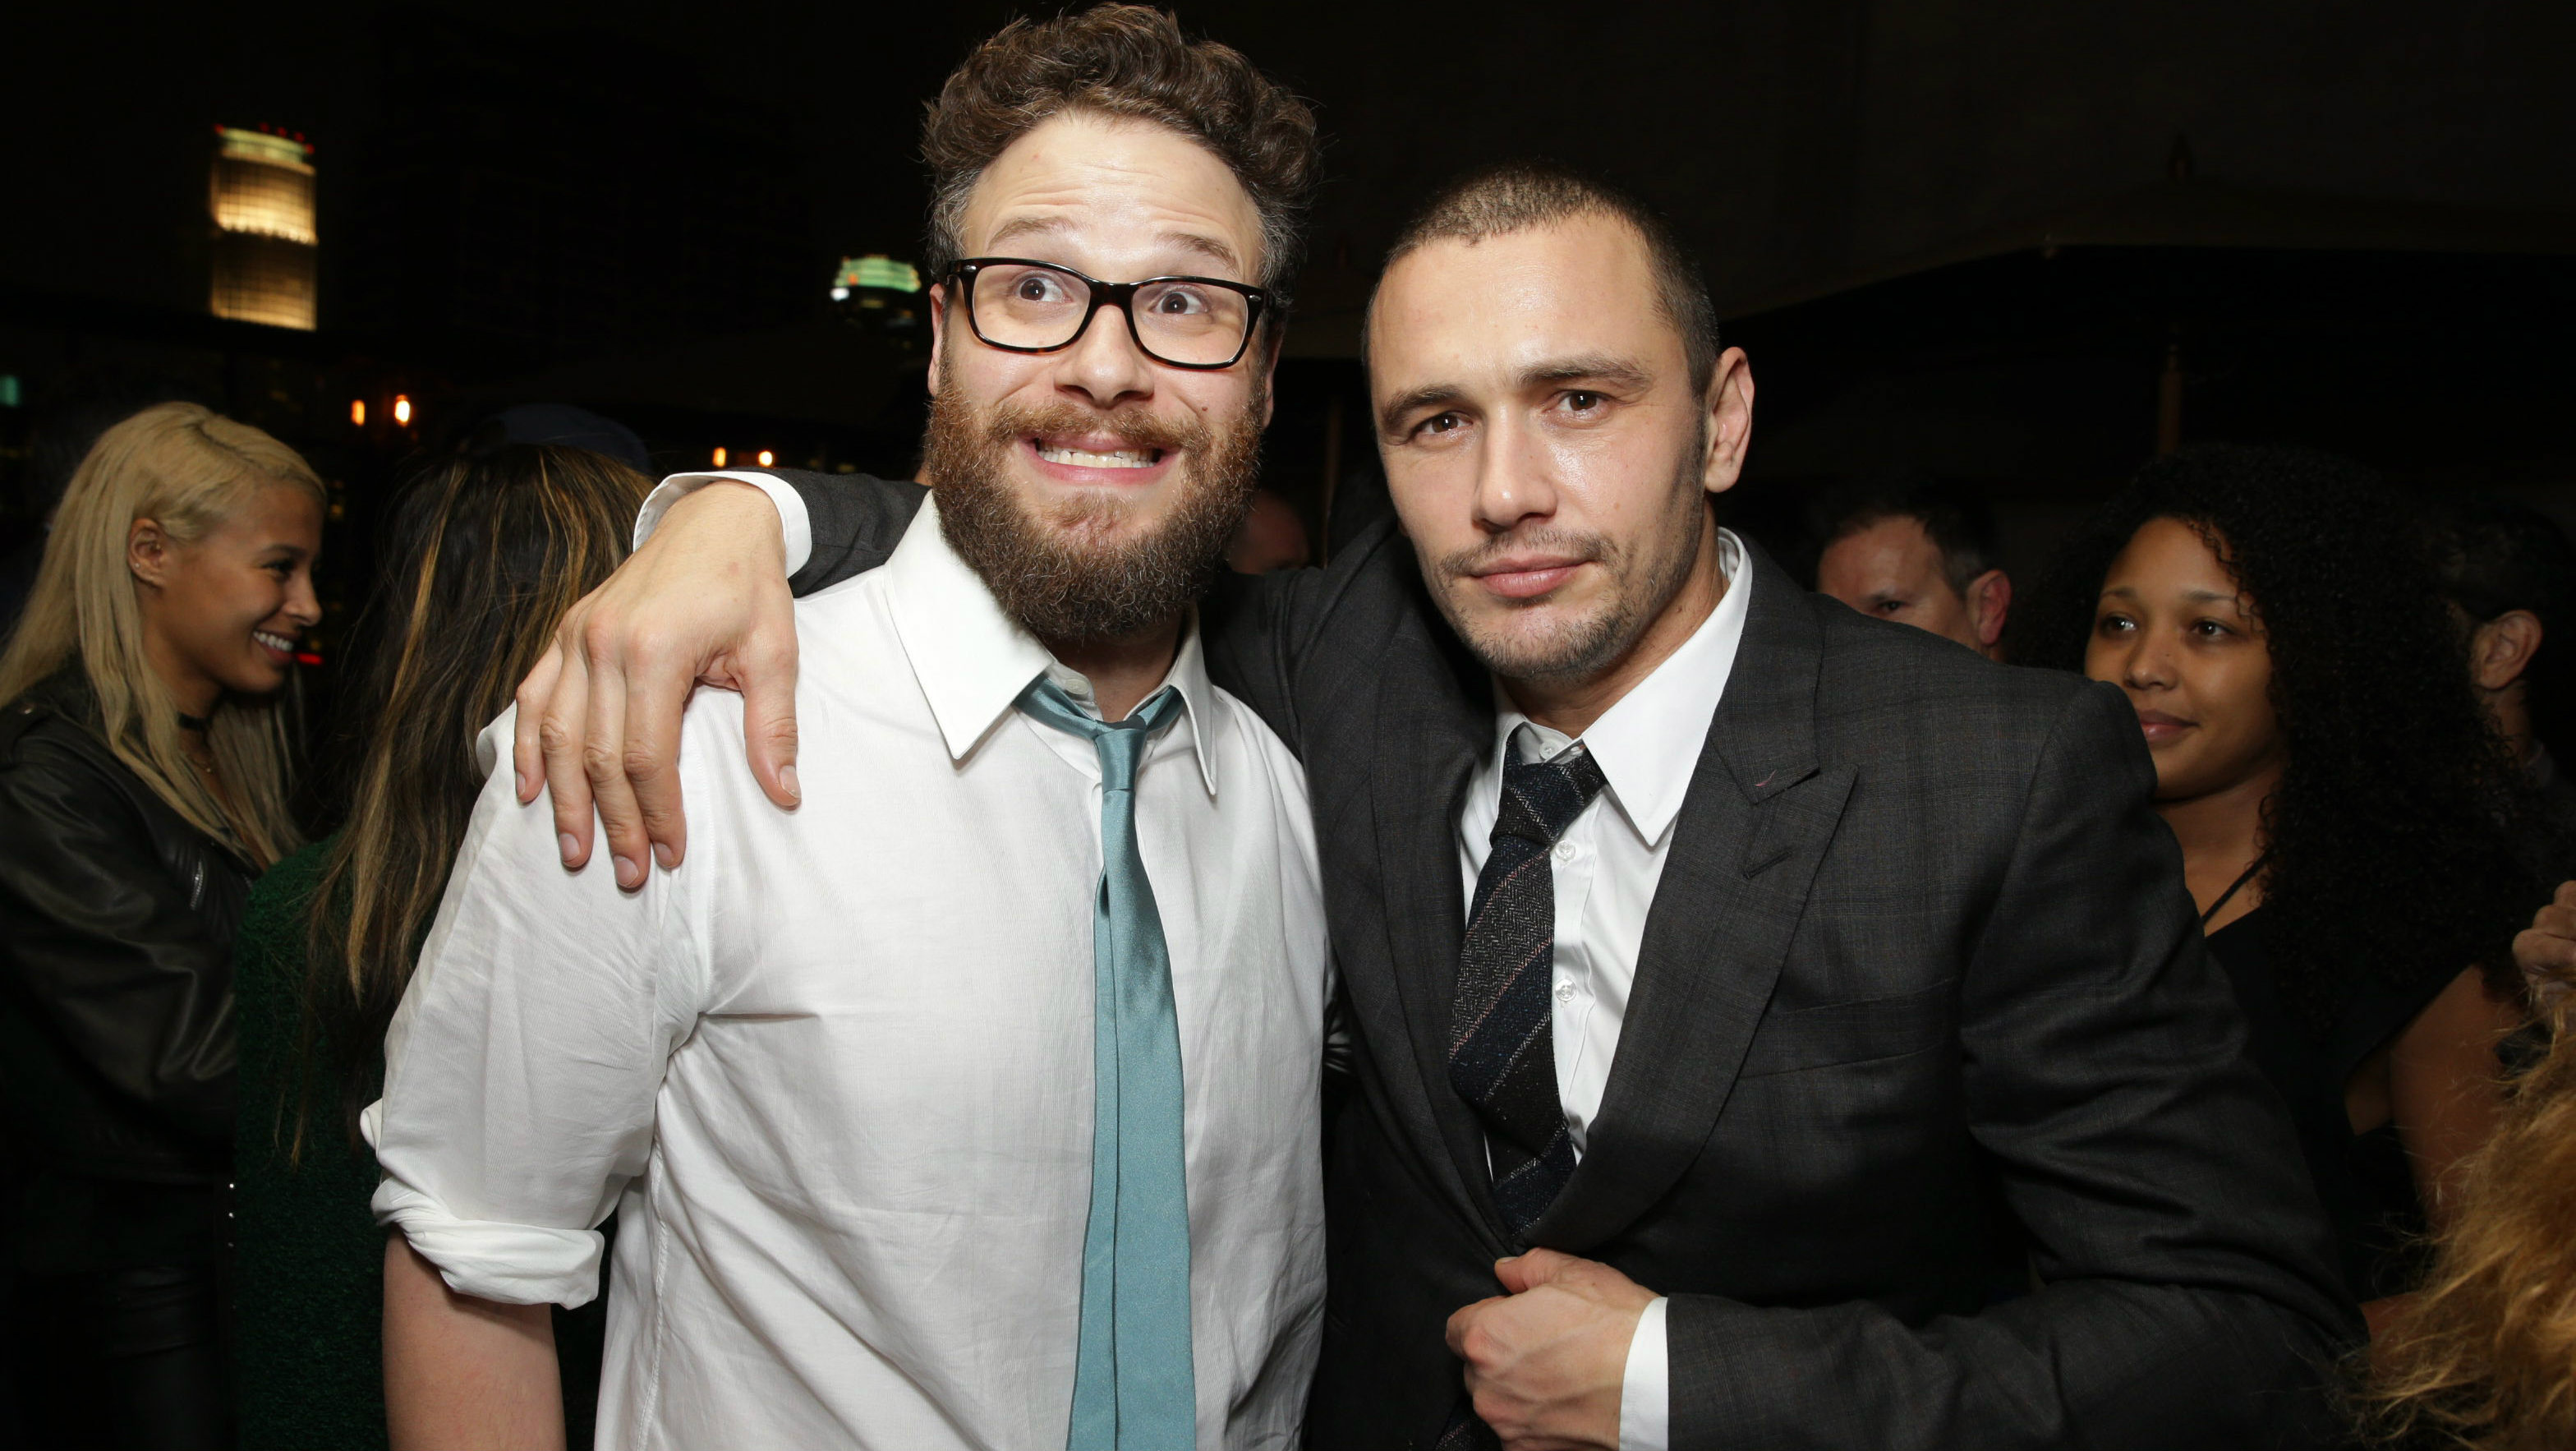 """Director/Producer/Screenwriter Seth Rogen and James Franco seen at Columbia Pictures World Premiere of """"The Interview"""" on Thursday, Dec 11, 2014, in Los Angeles. (Photo by Eric Charbonneau/Invision for Sony Pictures/AP Images)"""